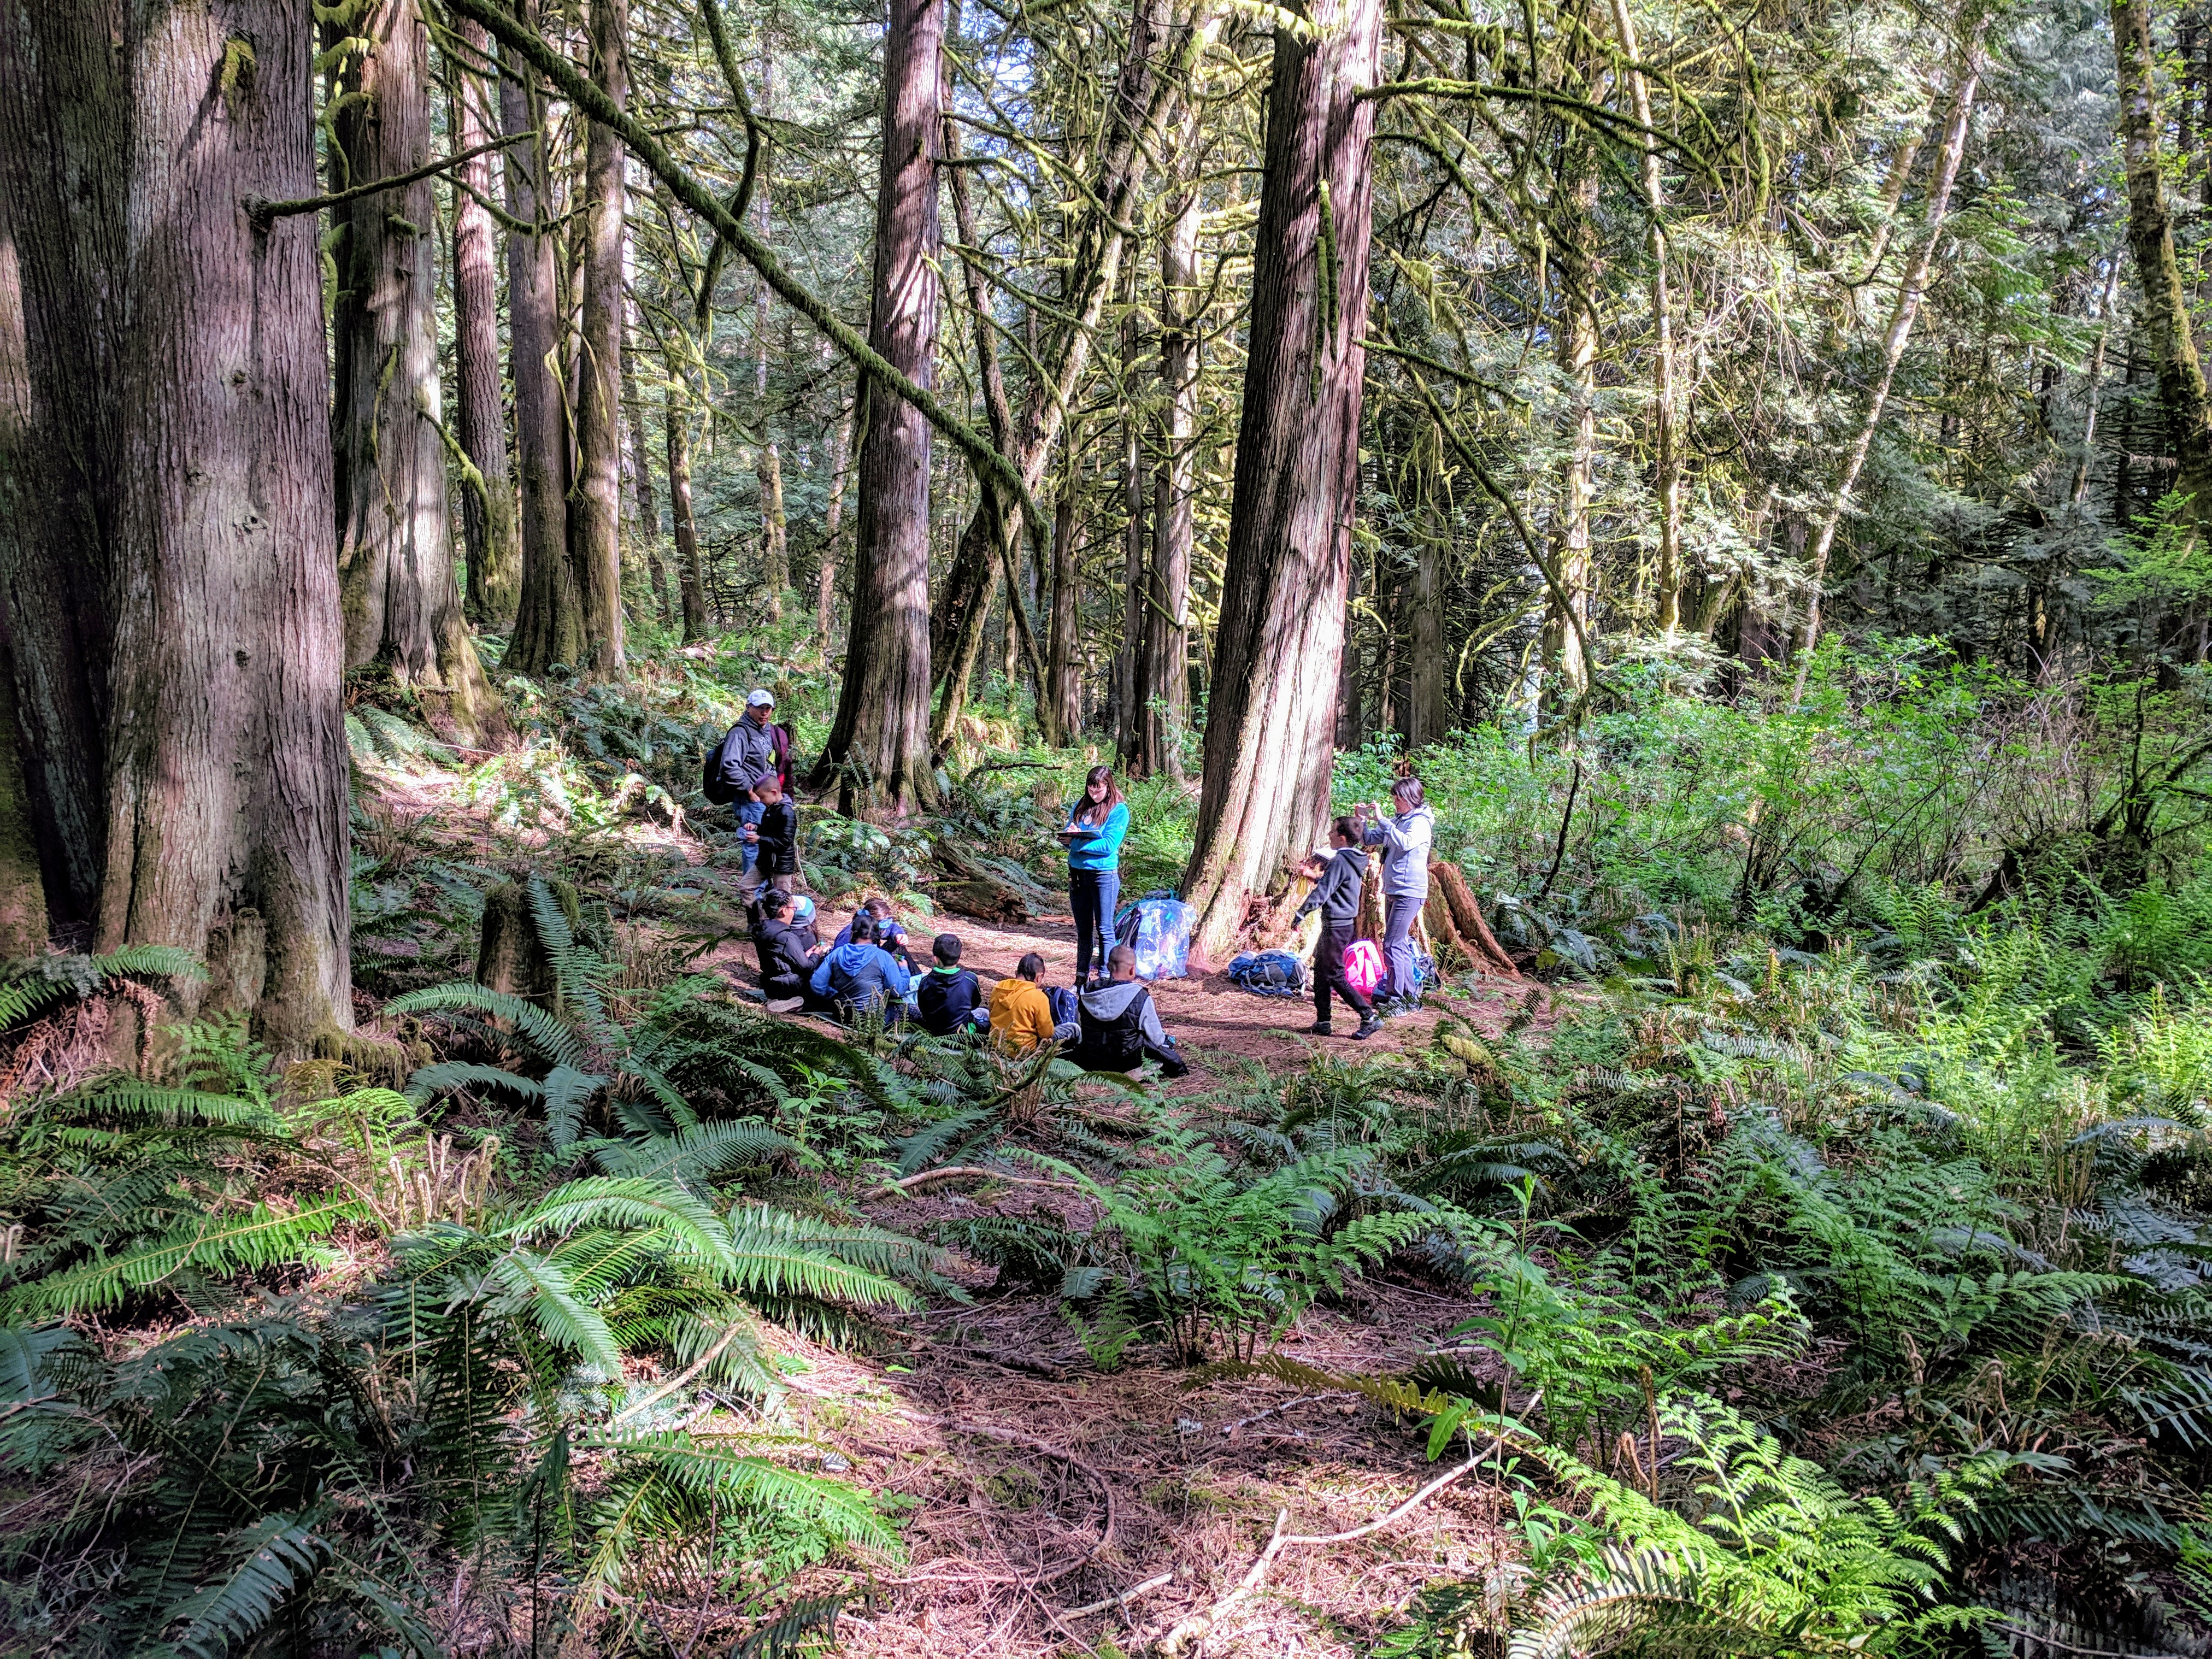 forest-school-may-2019_46969267084_o.jpg